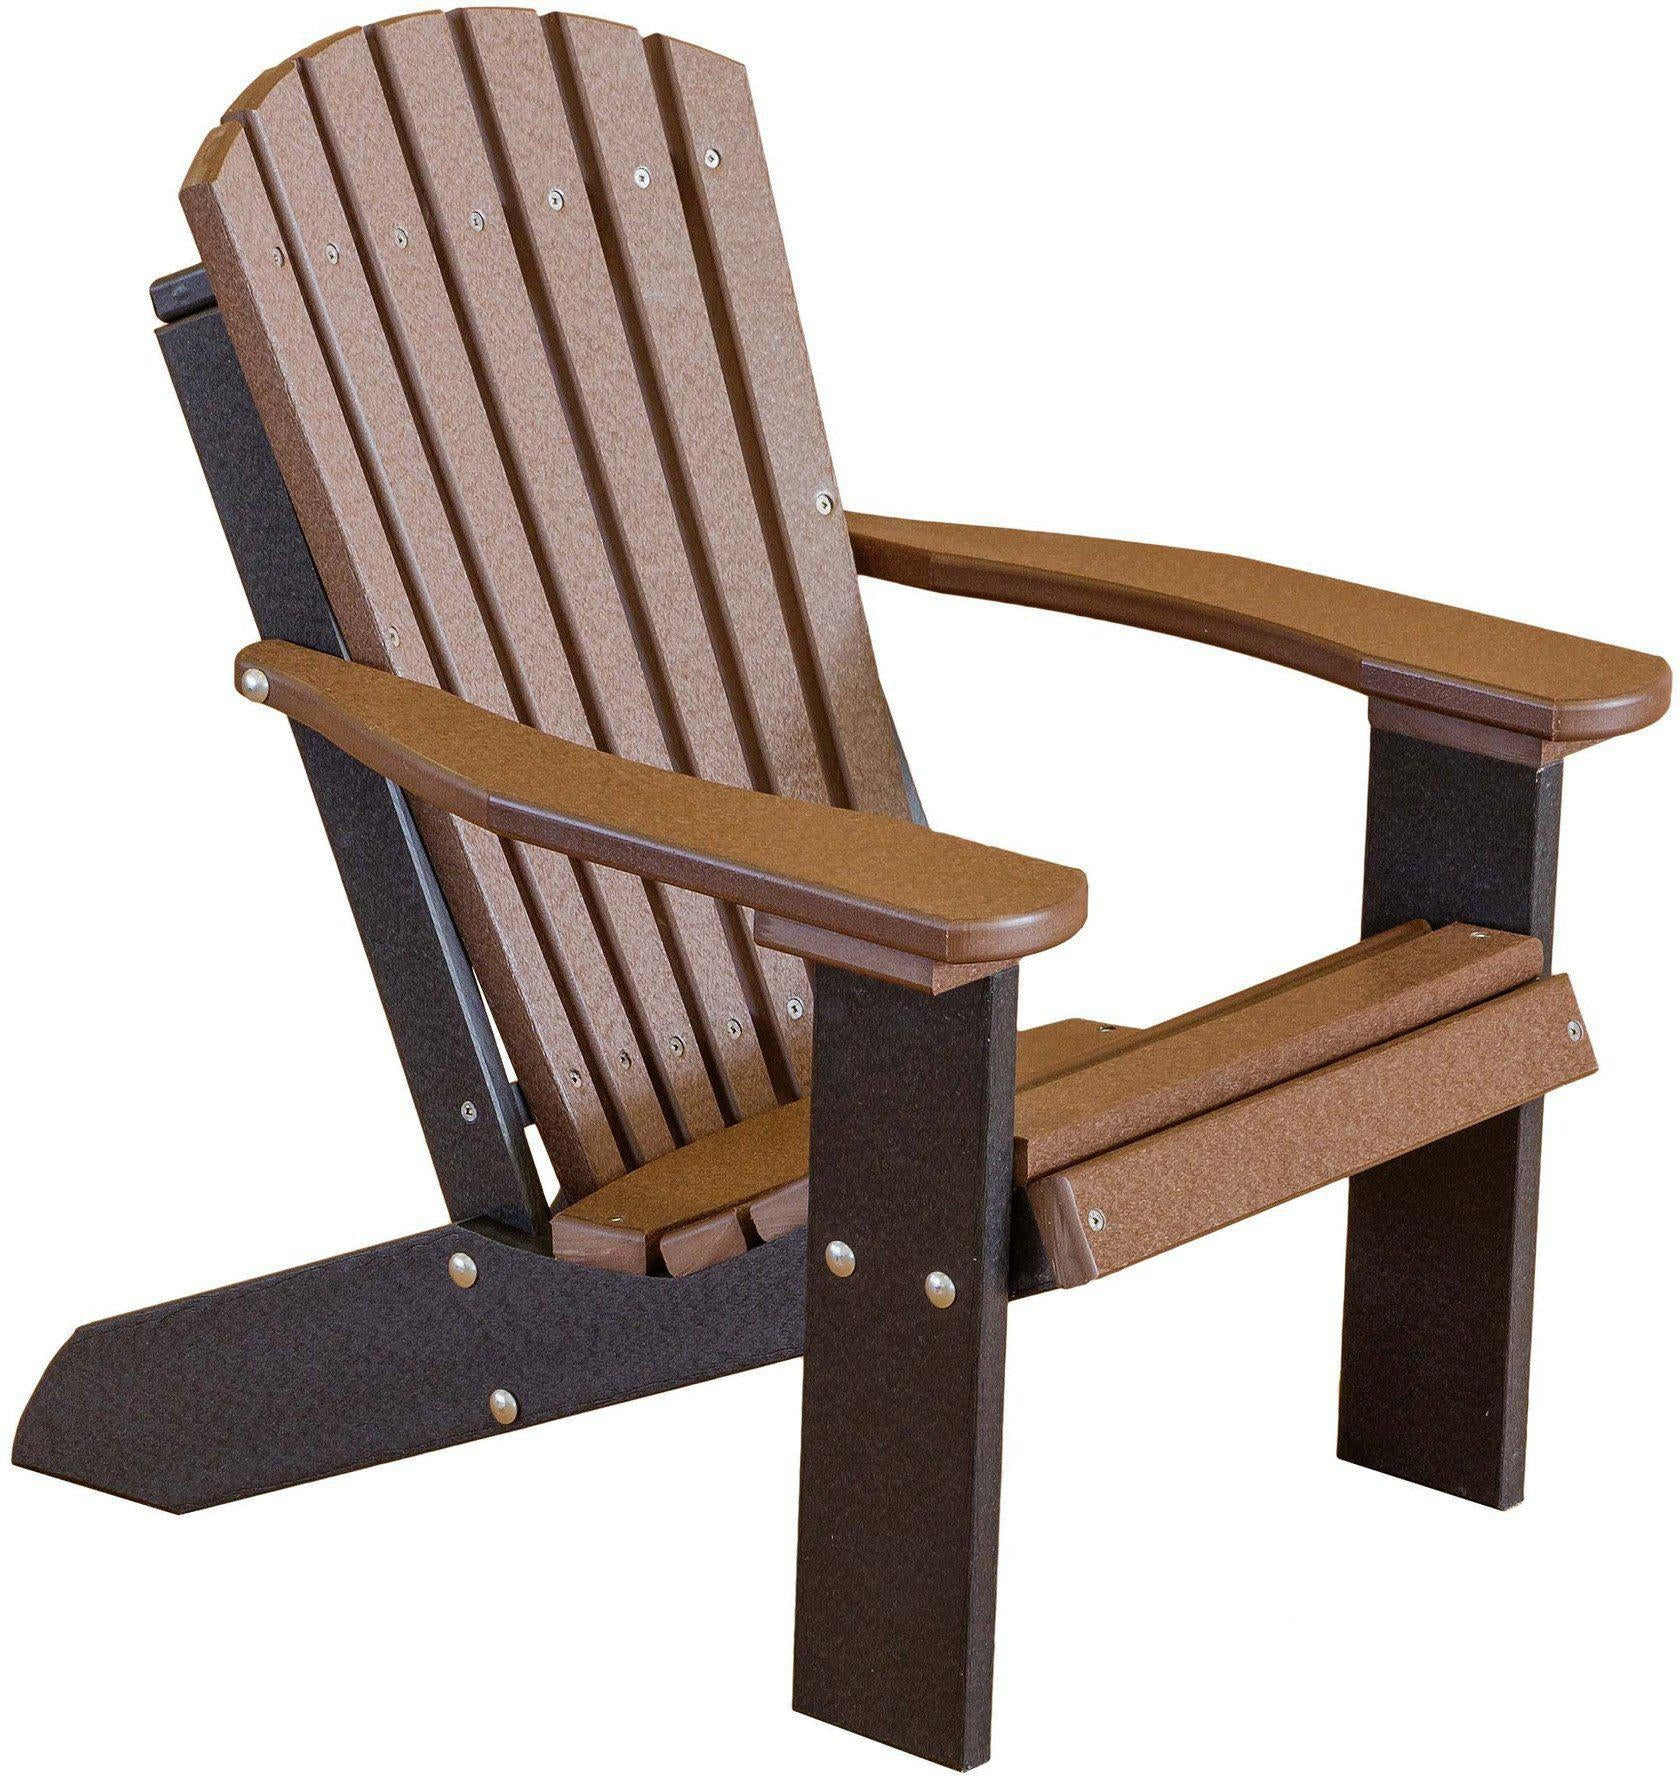 Wildridge Recycled Plastic Children s Adirondack Chair Rocking